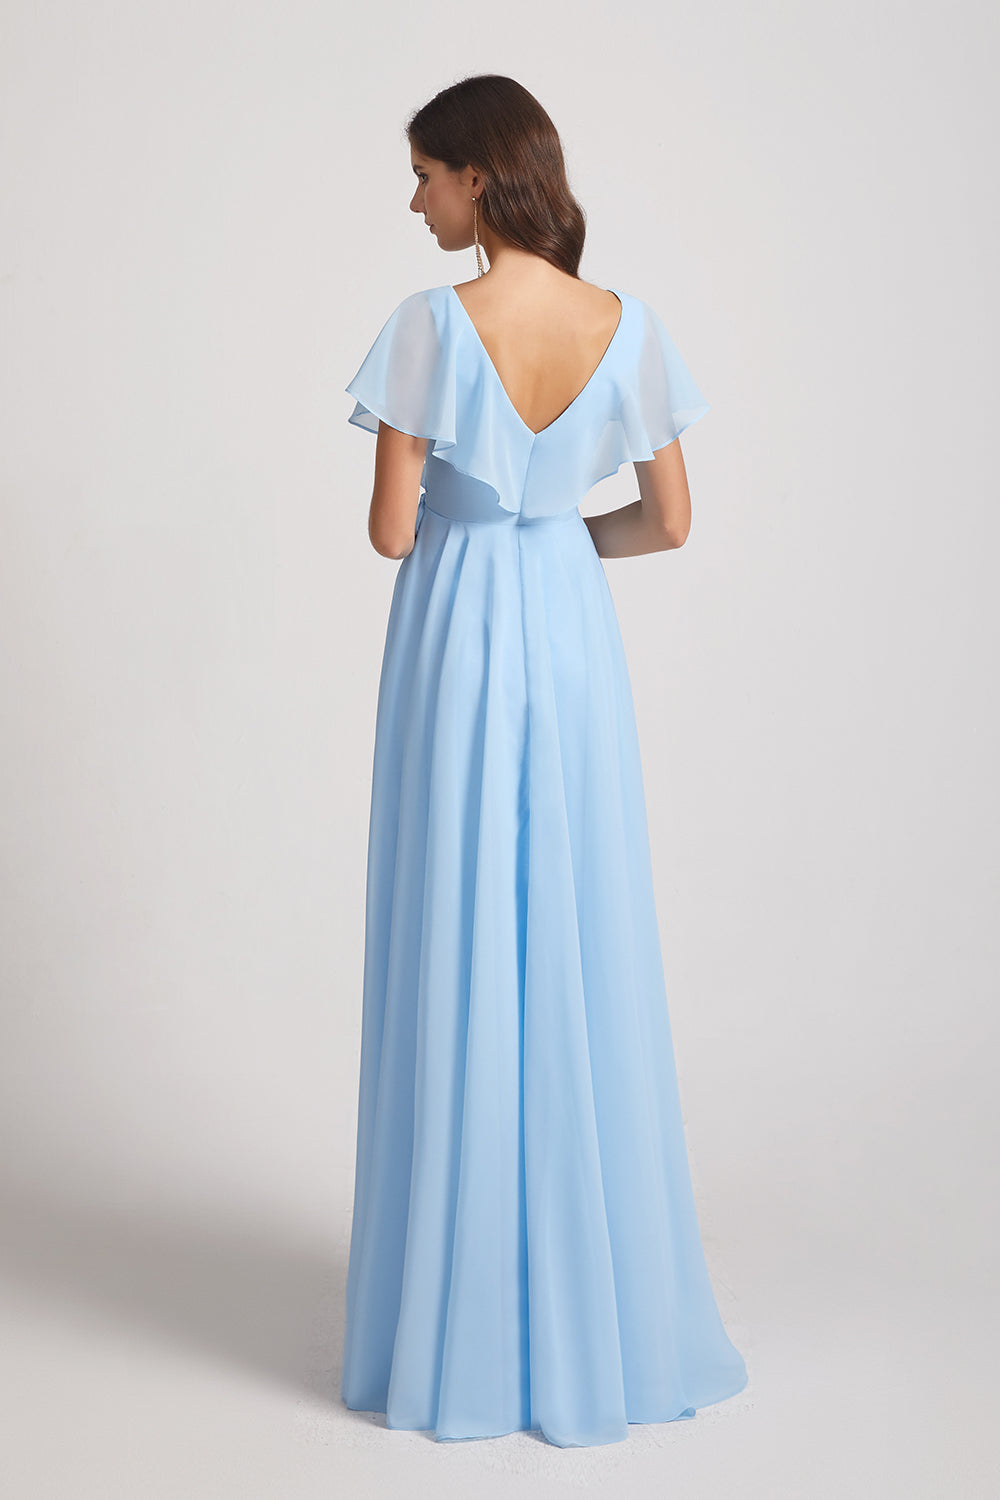 v-back chiffon ruched bridesmaids gown